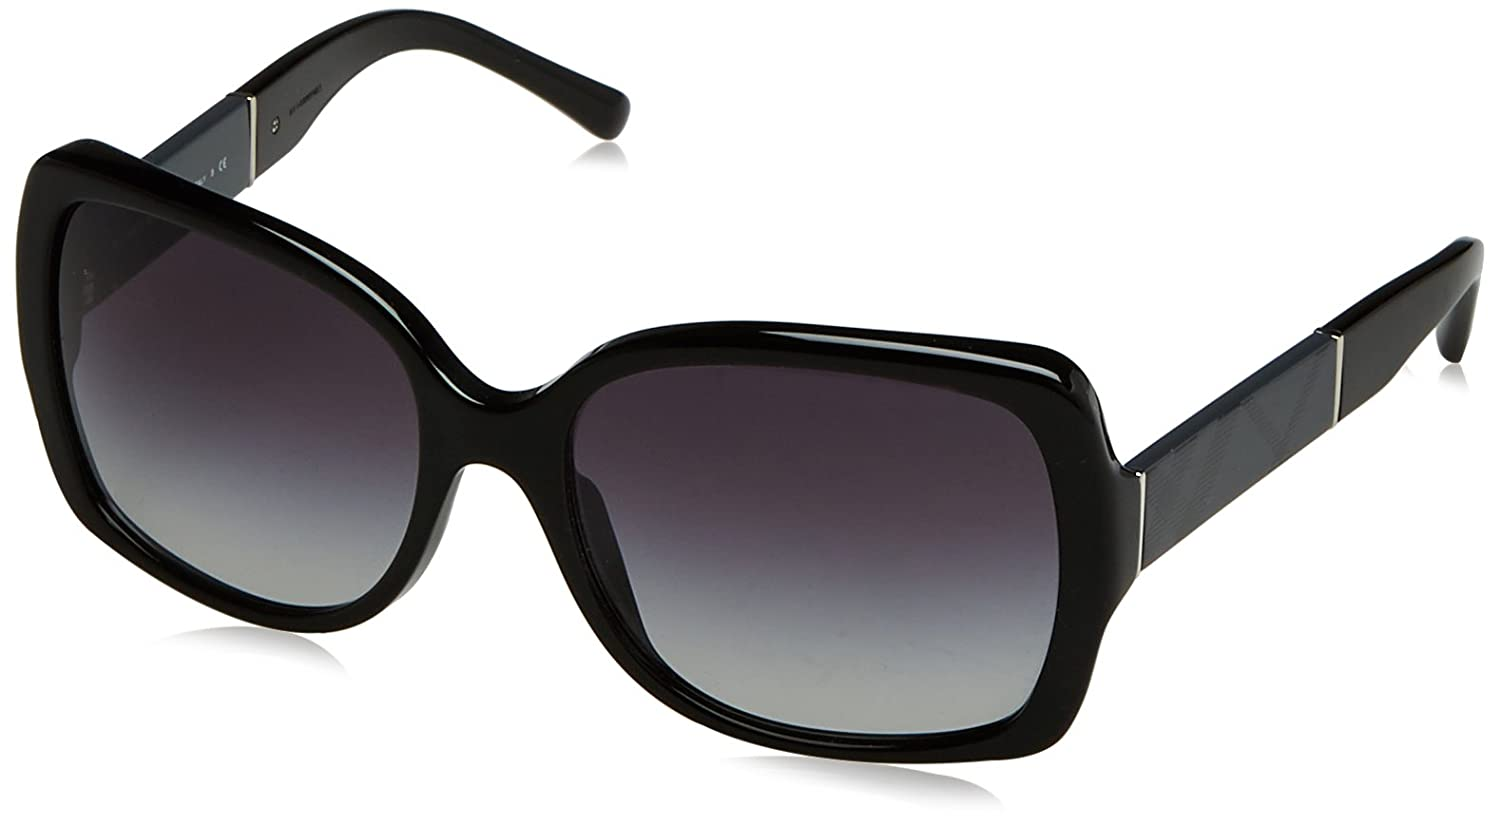 ec113ccadc0 Amazon.com  Burberry Women s BE4160 Sunglasses Black Gray Gradient 58mm   Burberry  Shoes